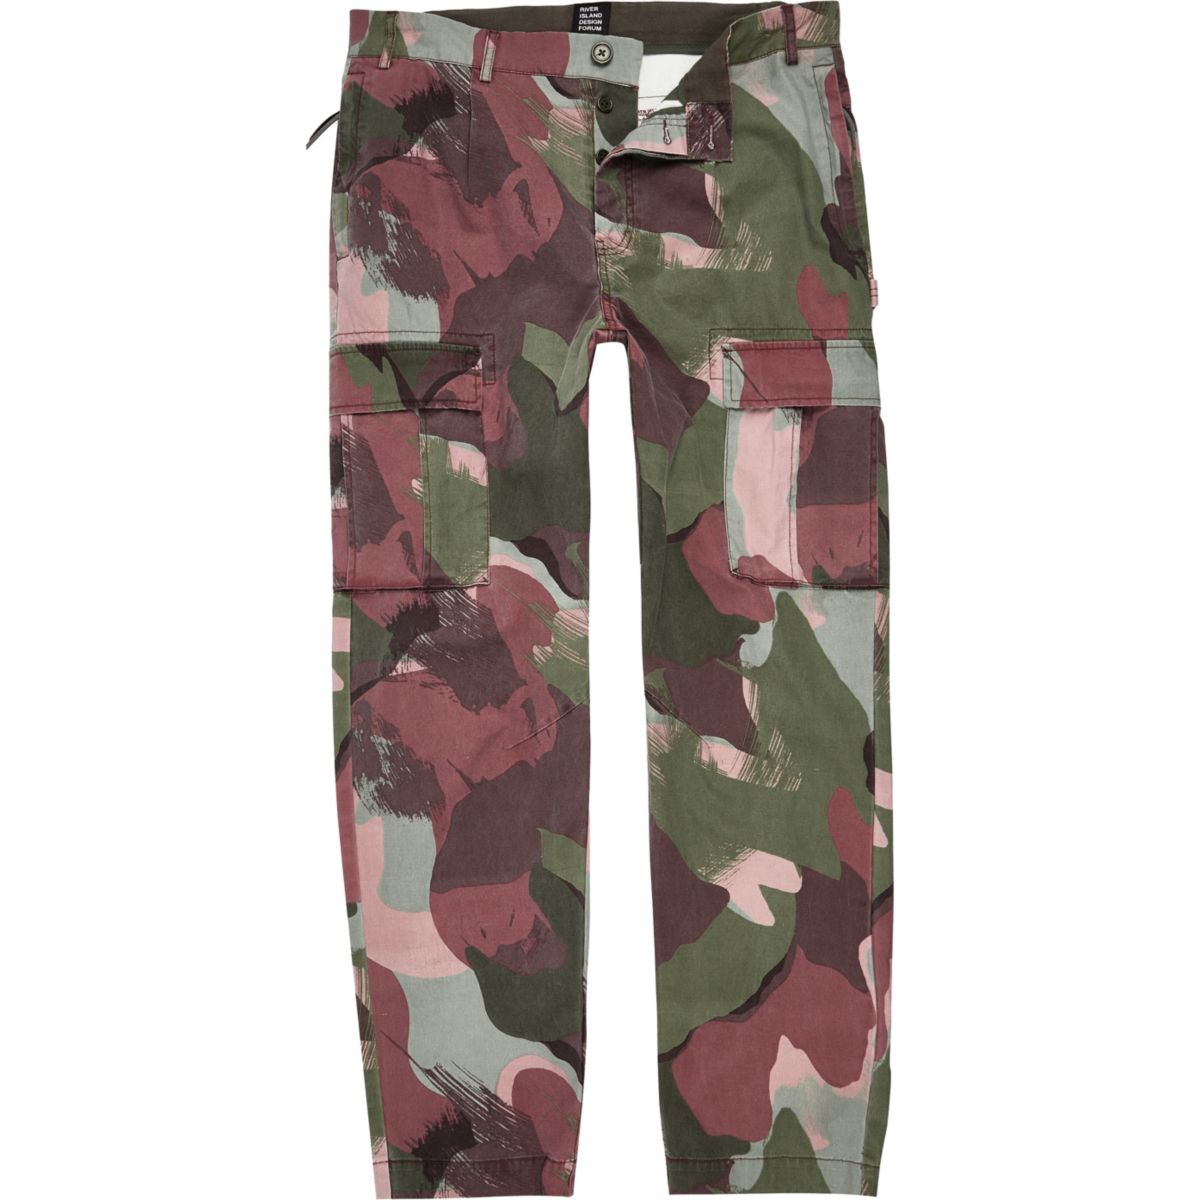 Khaki green Design Forum camo cargo pants